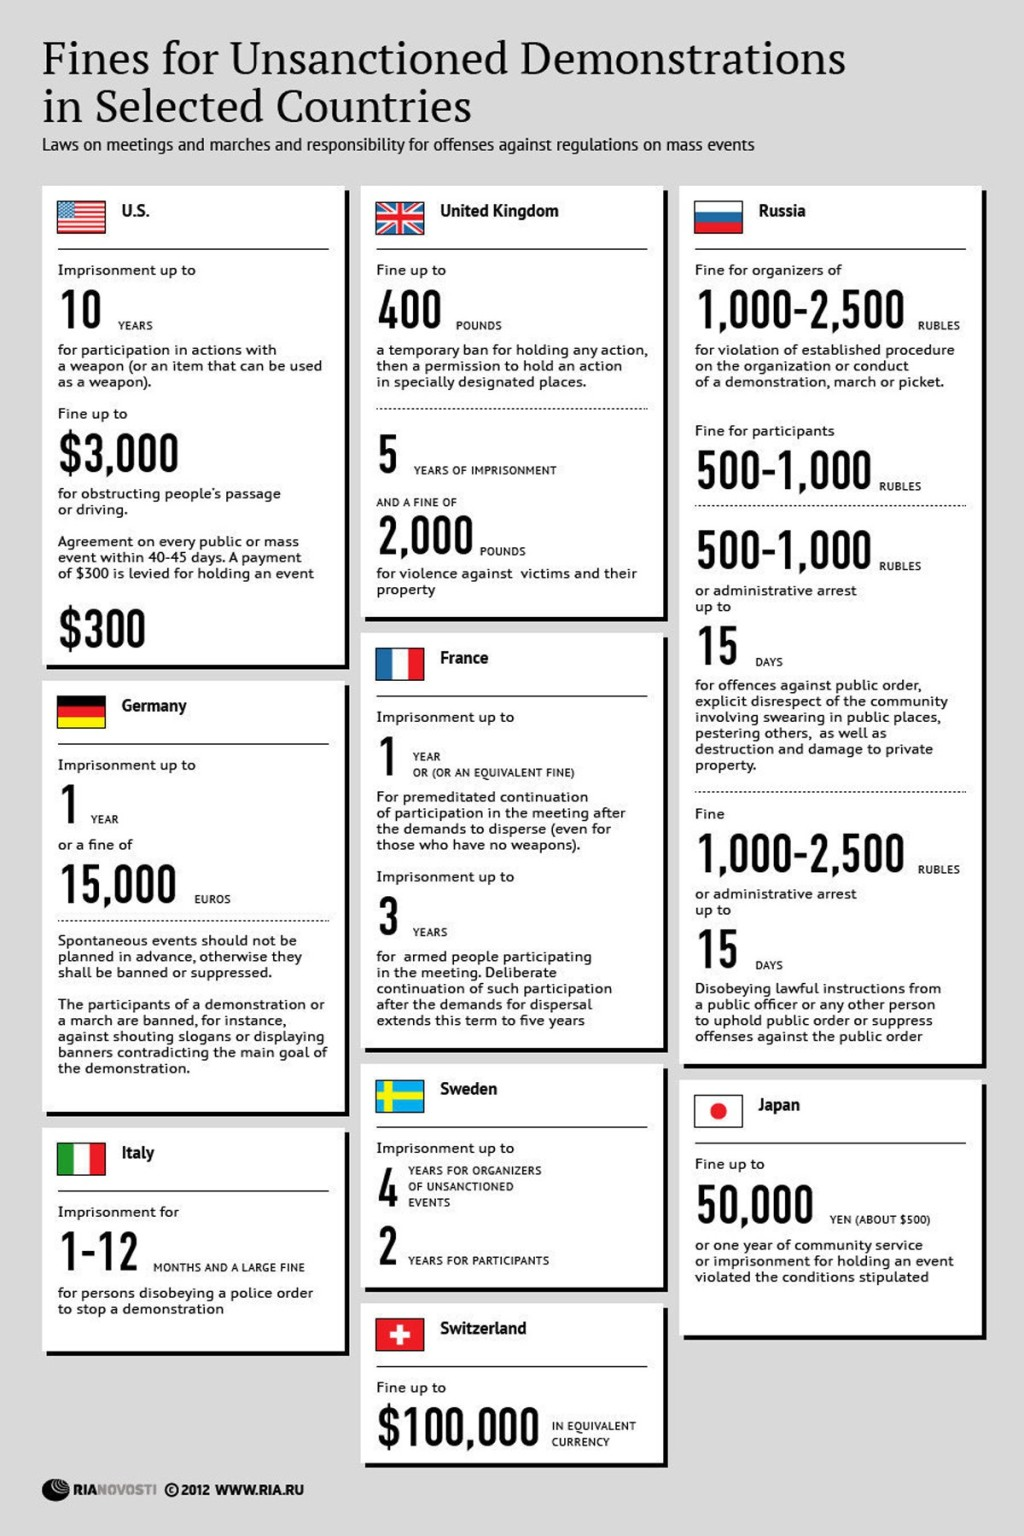 00 RIA-Novosti Infographics. Fines for Unsanctioned Demonstrations in Selected Countries. 2012